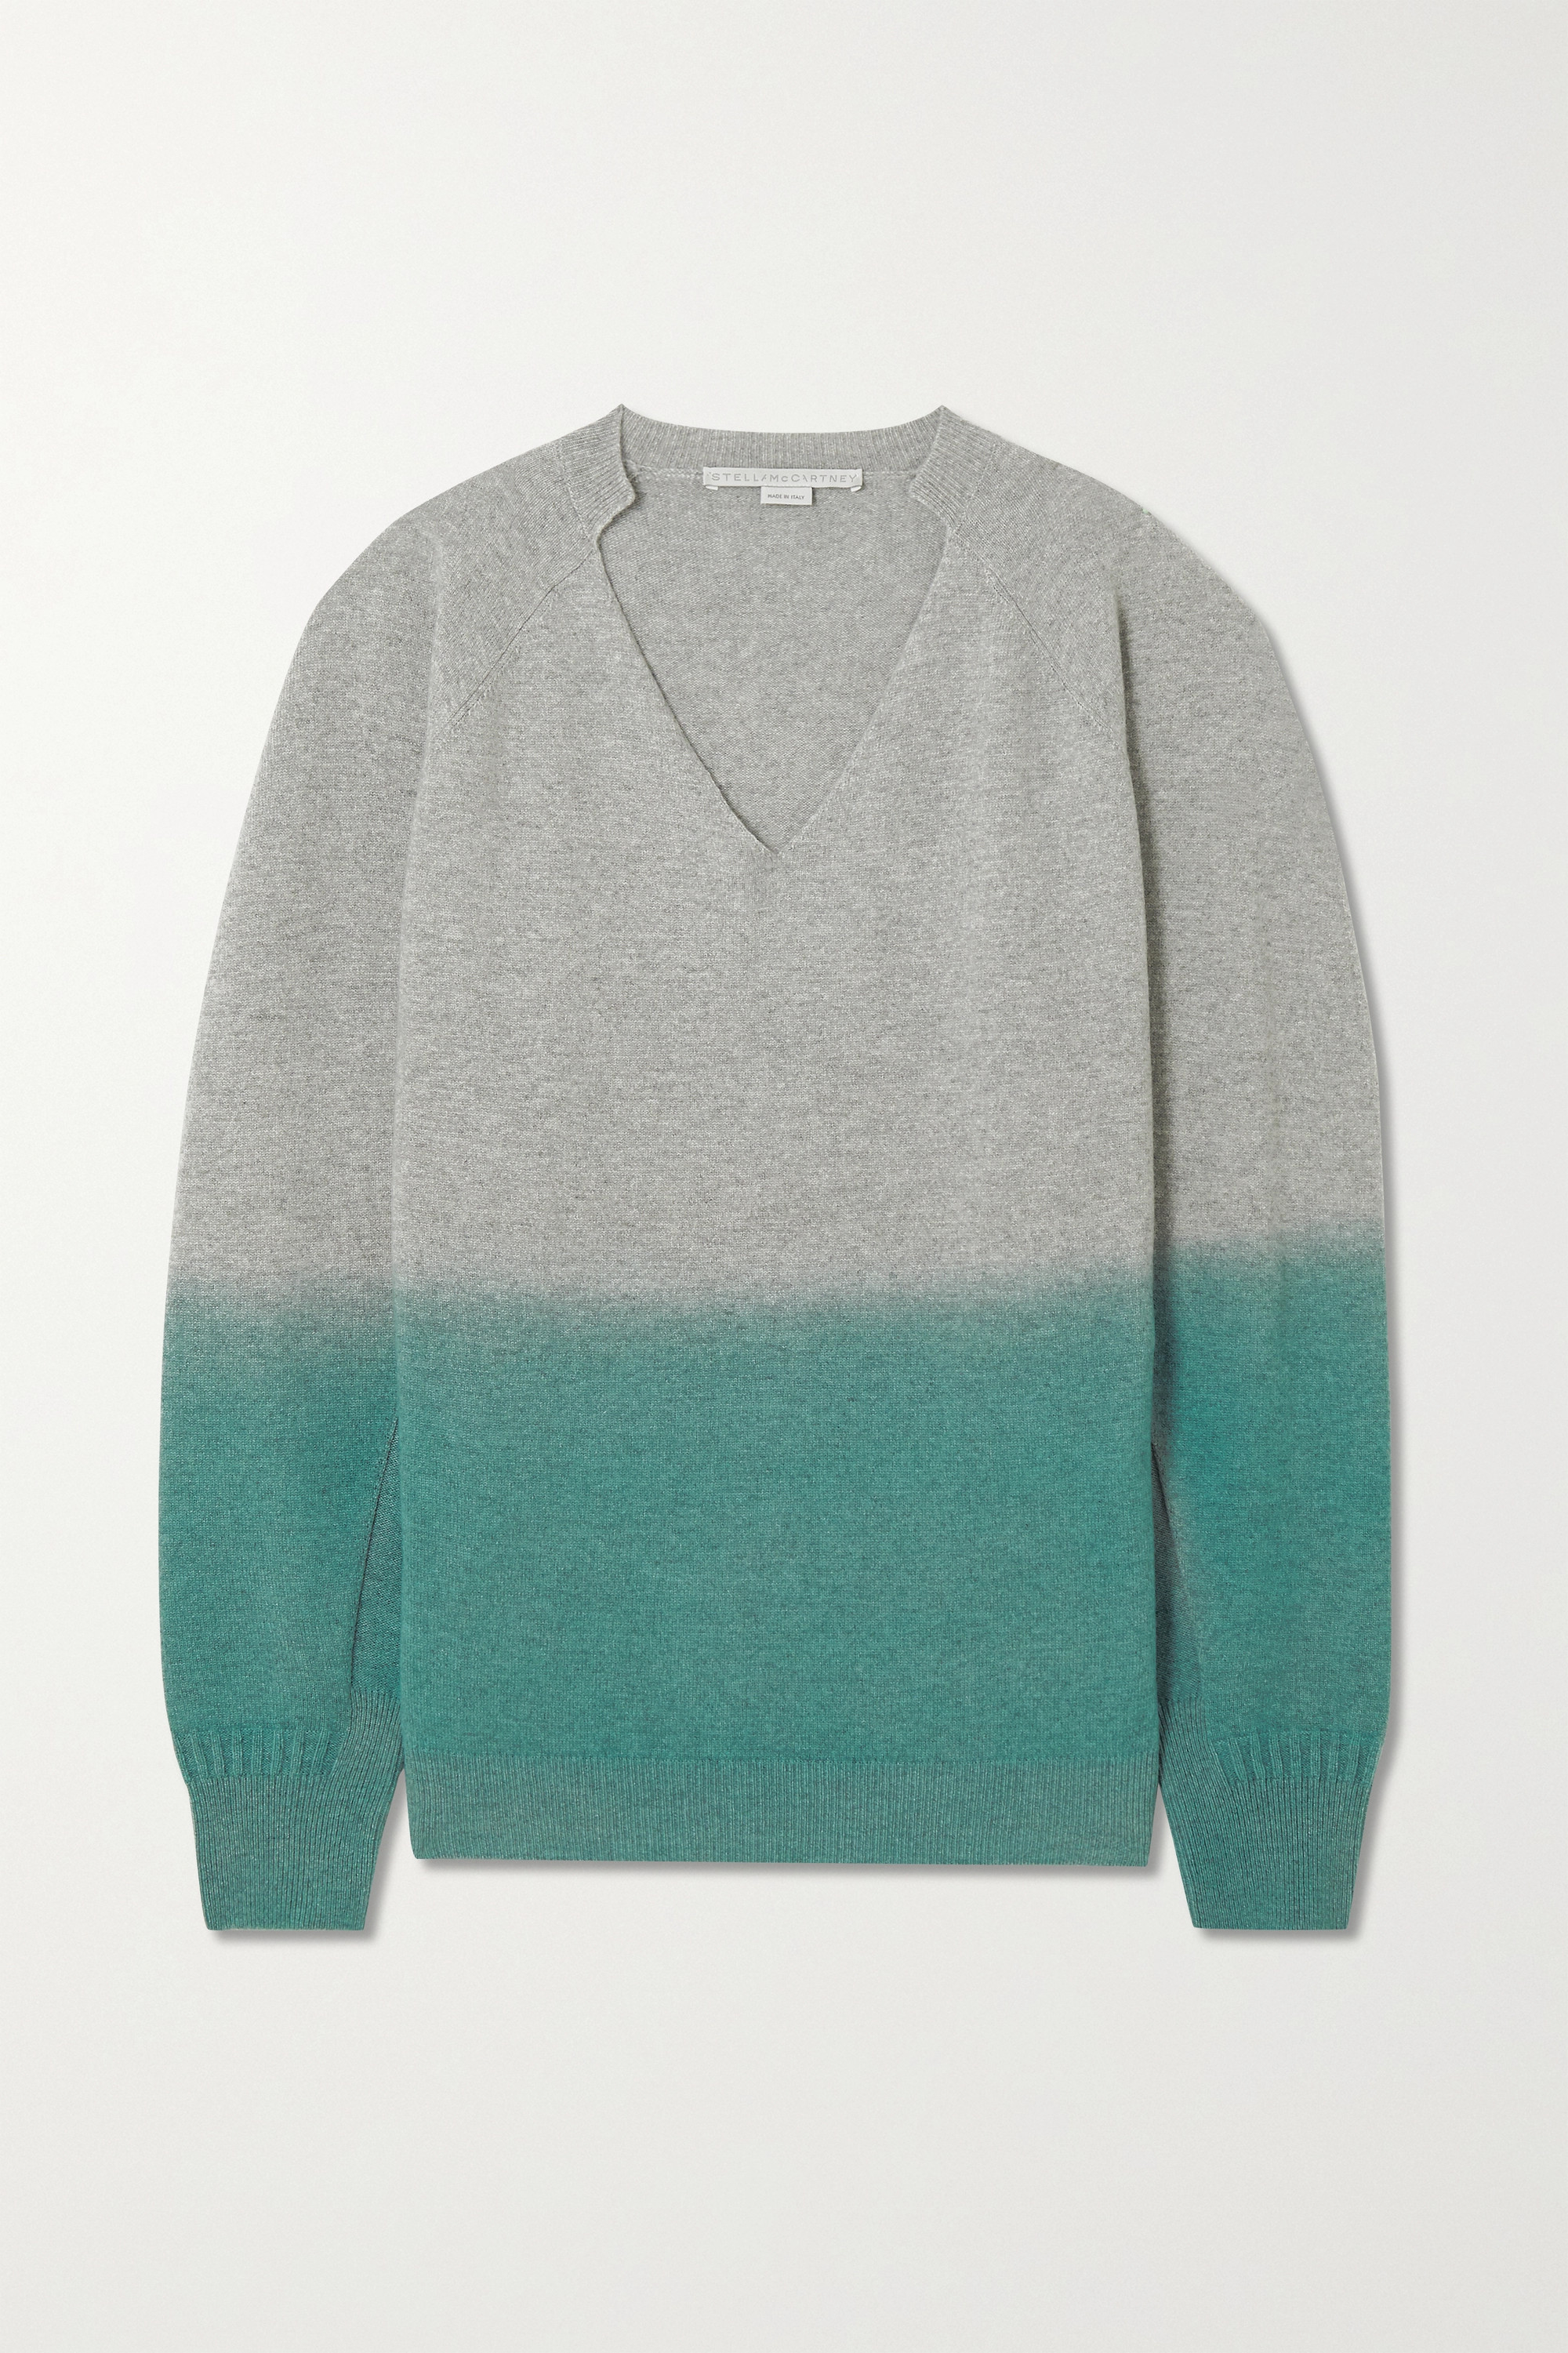 Stella McCartney Oversized ombré cashmere and wool-blend sweater